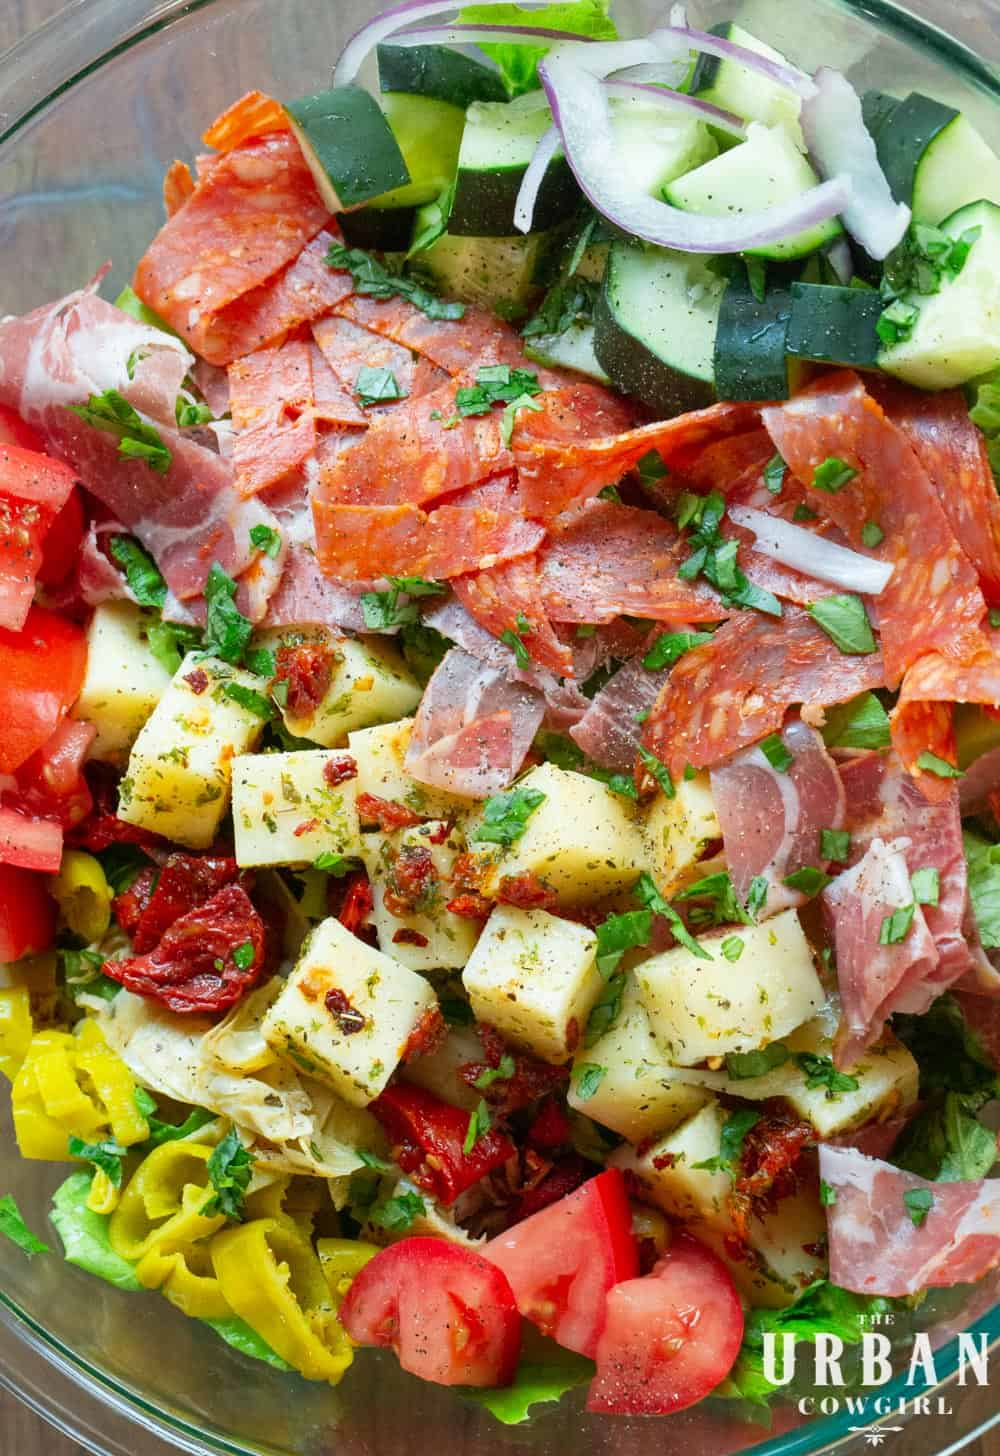 A bright bowl of antipasto salad, marinated cheese, candied tomatoes, cured meats, and bright peppers.